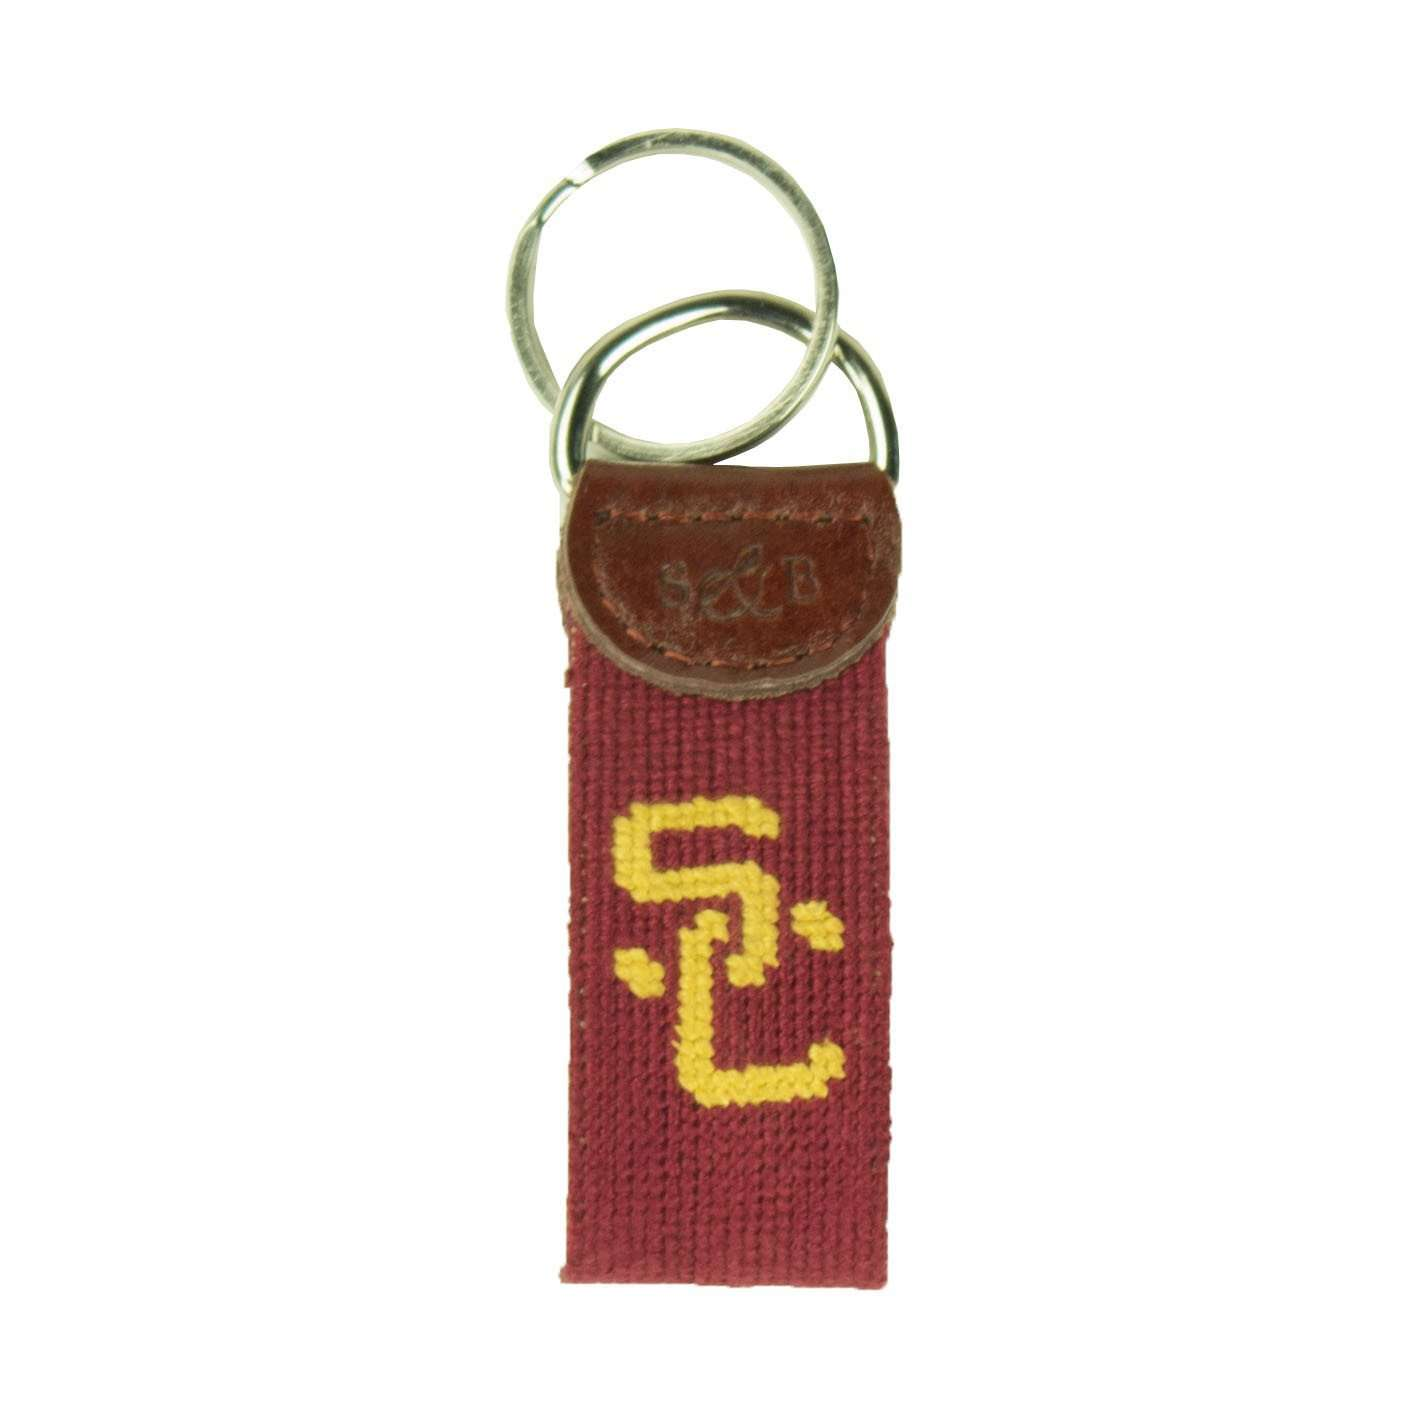 Key Fobs - University Of Southern California Needlepoint Key Fob In Crimson By Smathers & Branson